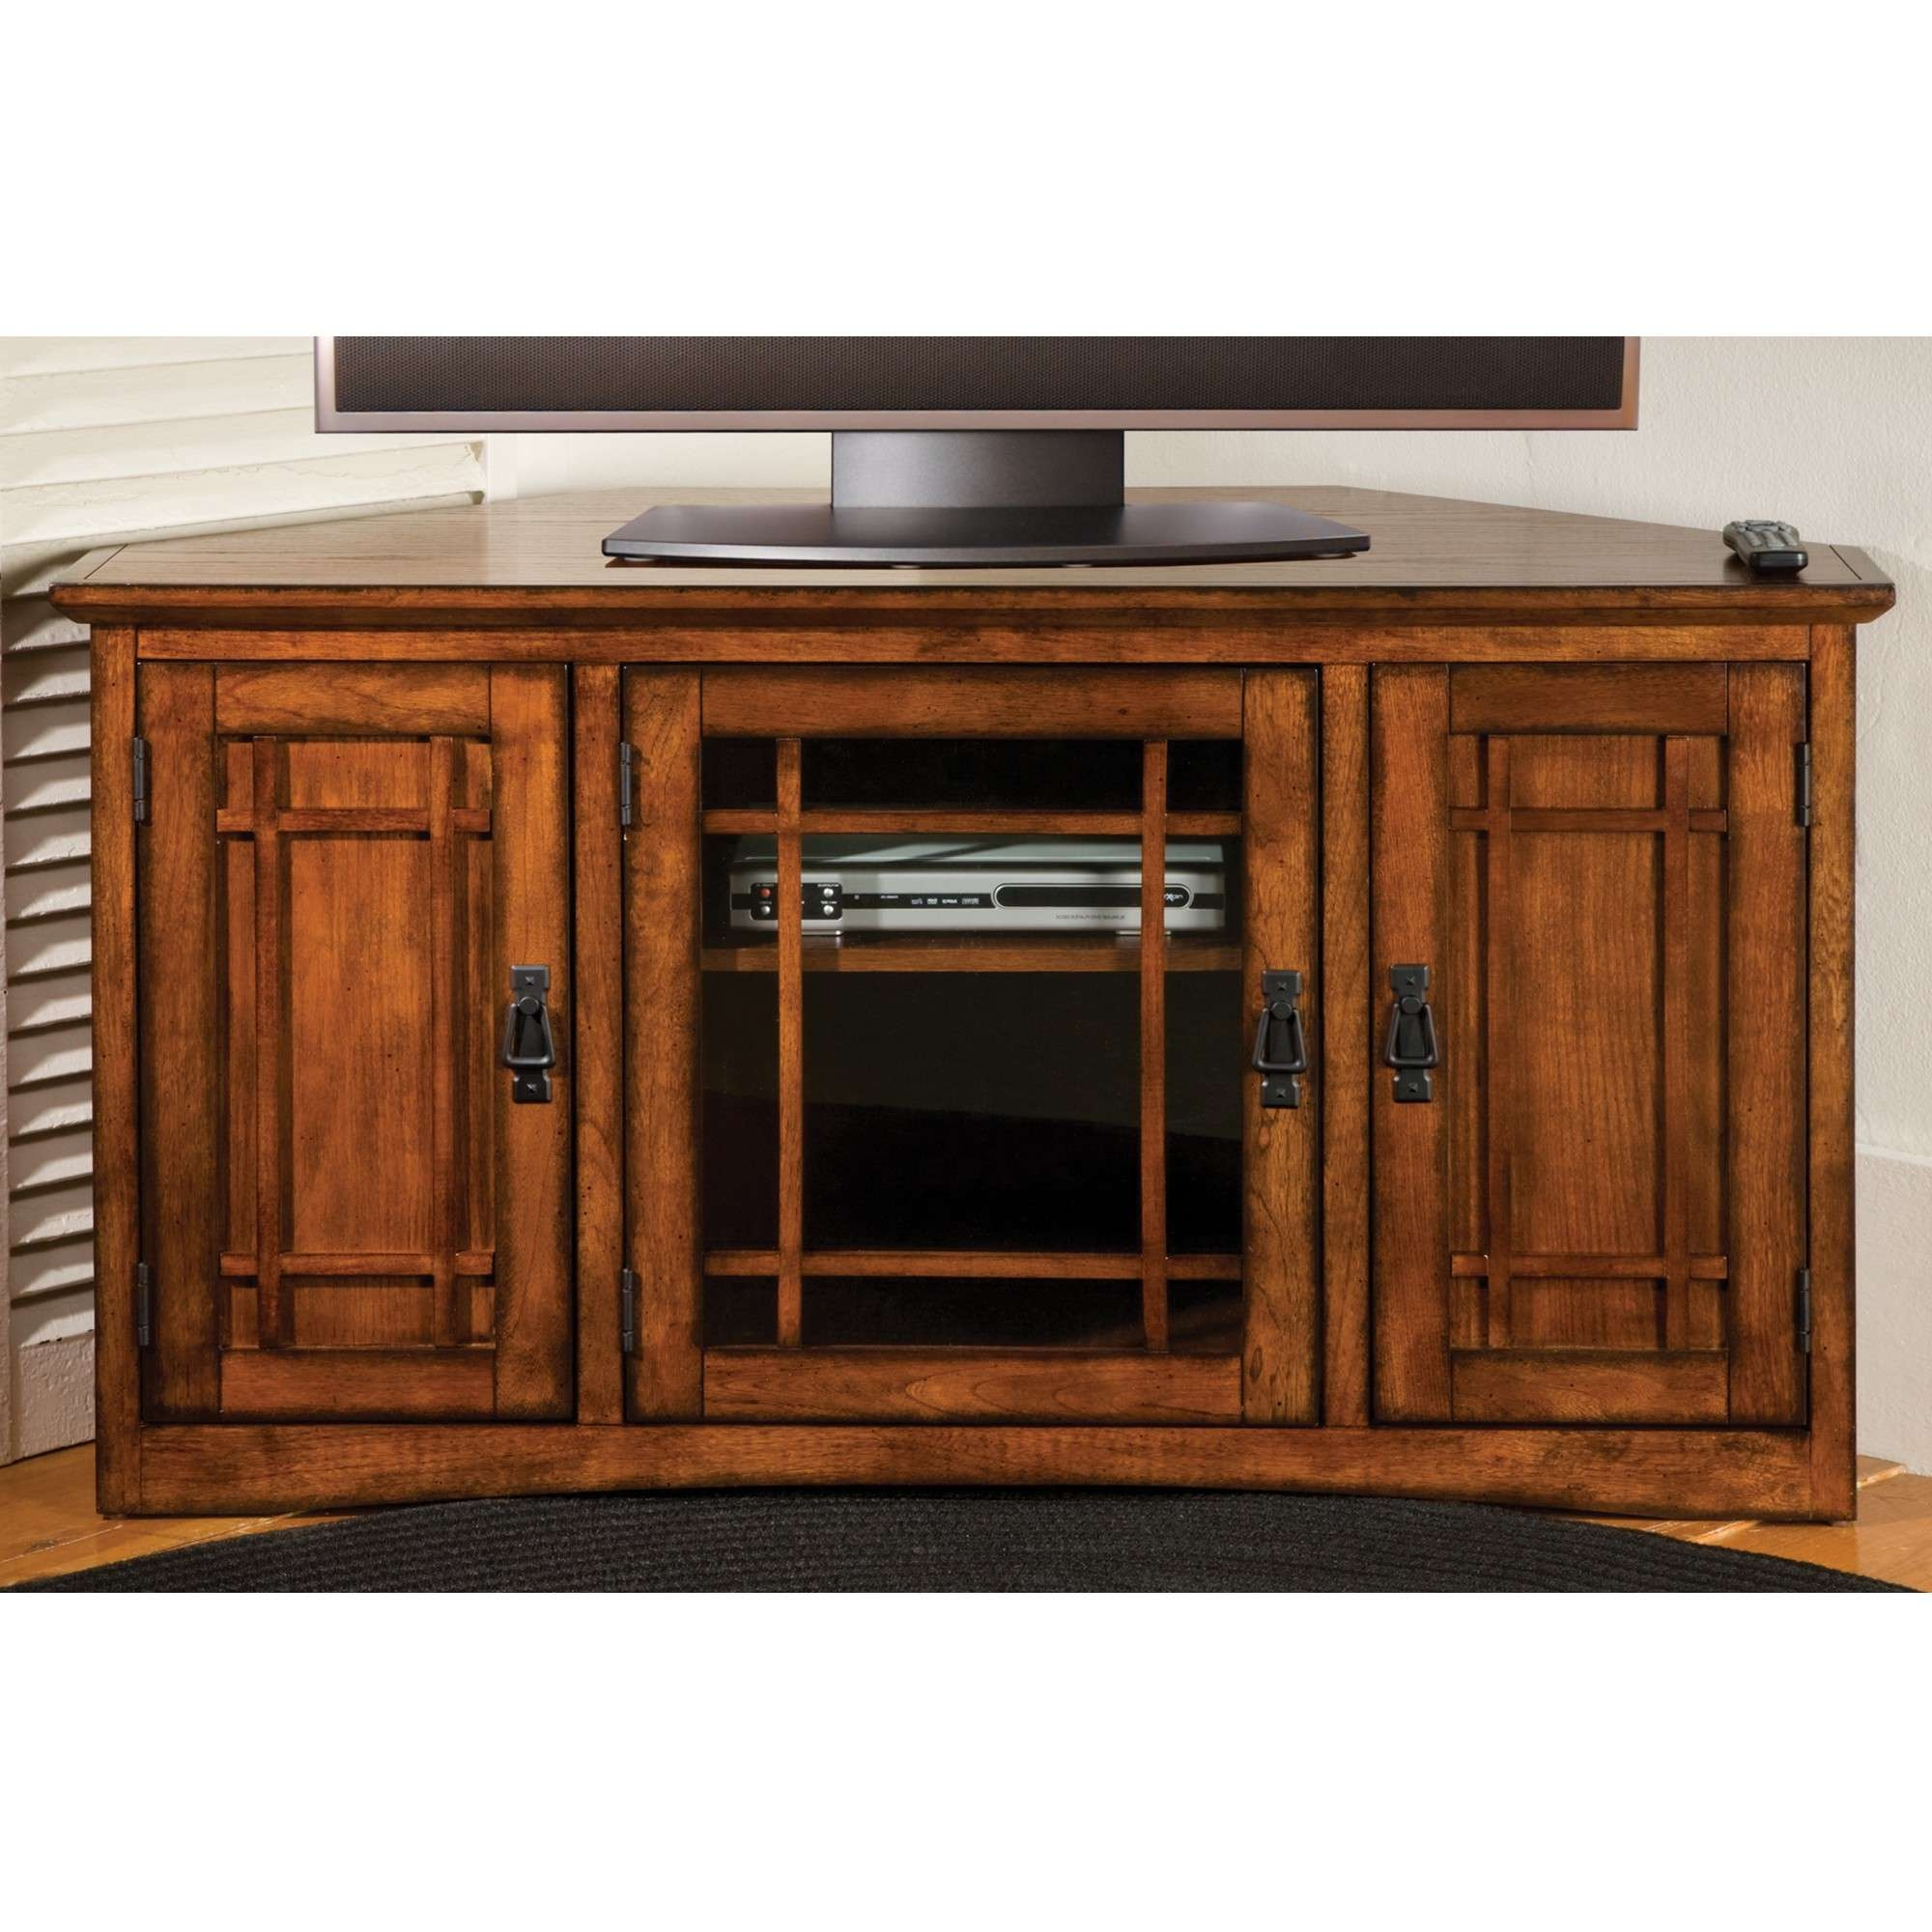 Mission Corner Tv Cabinet | Sturbridge Yankee Workshop Pertaining To Corner Tv Cabinets With Glass Doors (View 9 of 20)